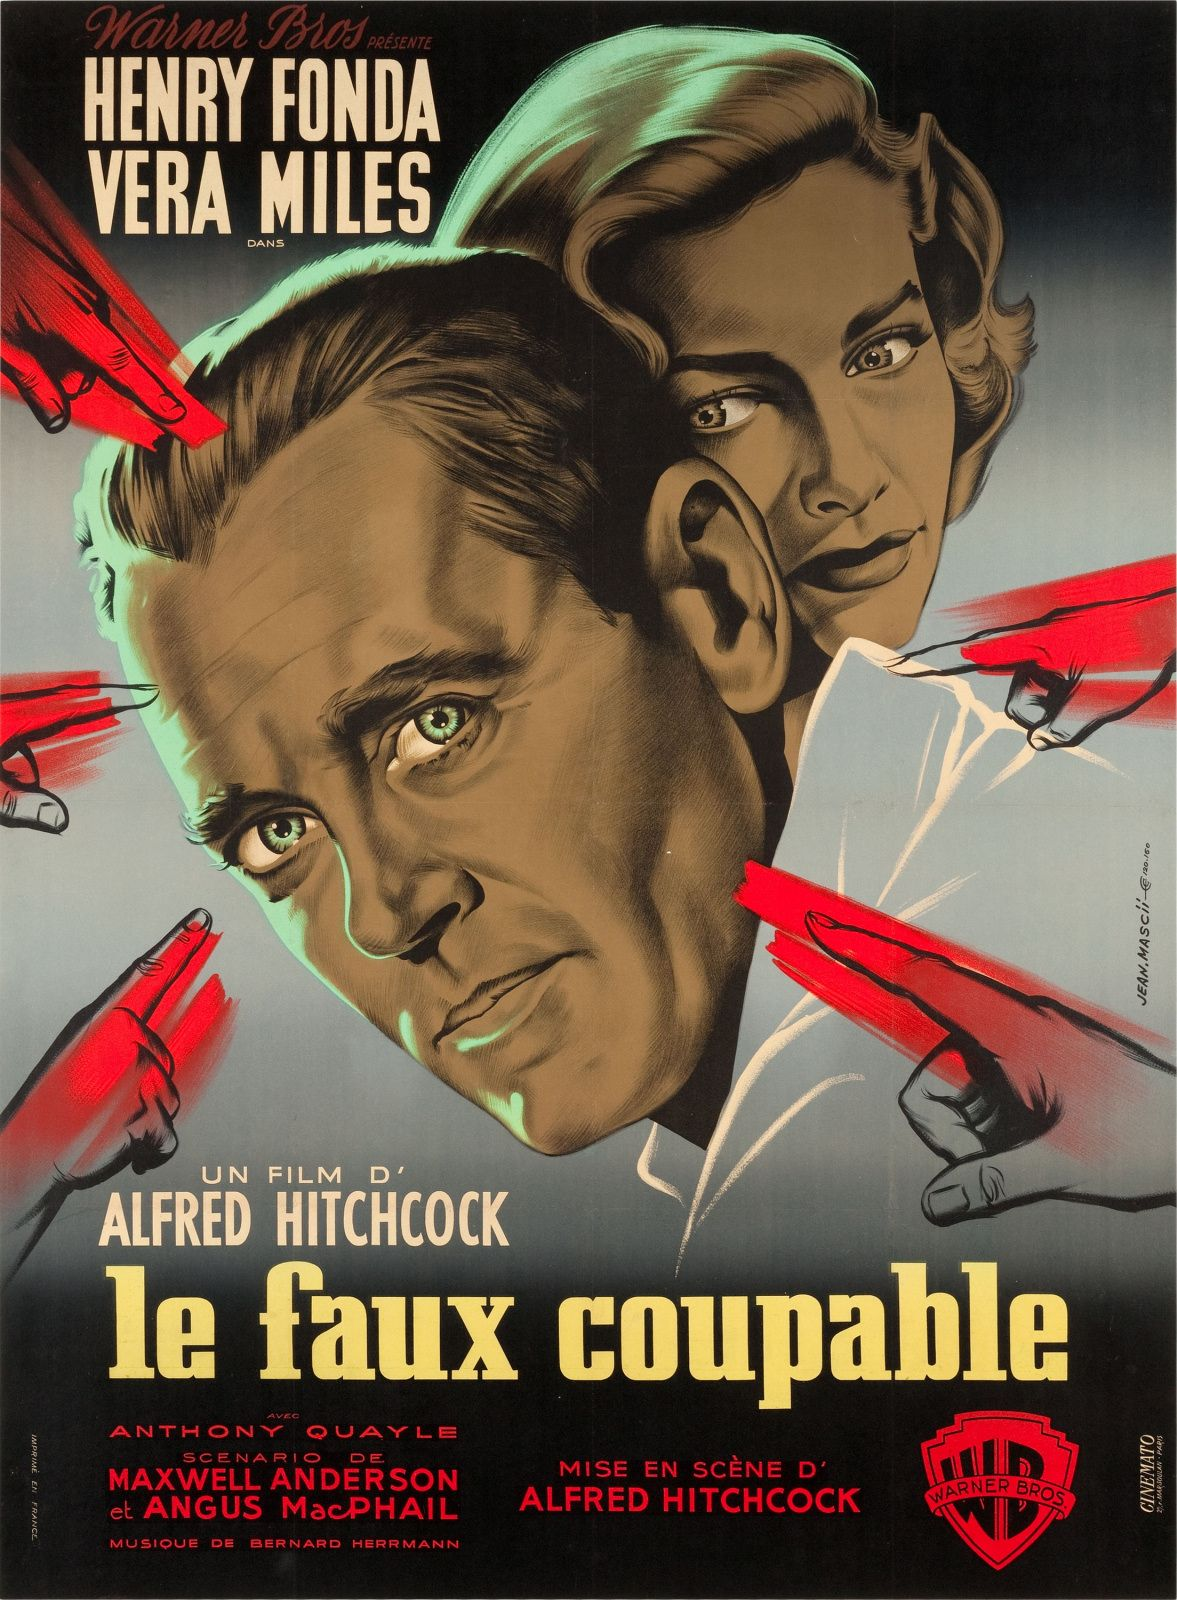 Hitchcock The Wrong Man 1956 Affichiste Jean Marscii